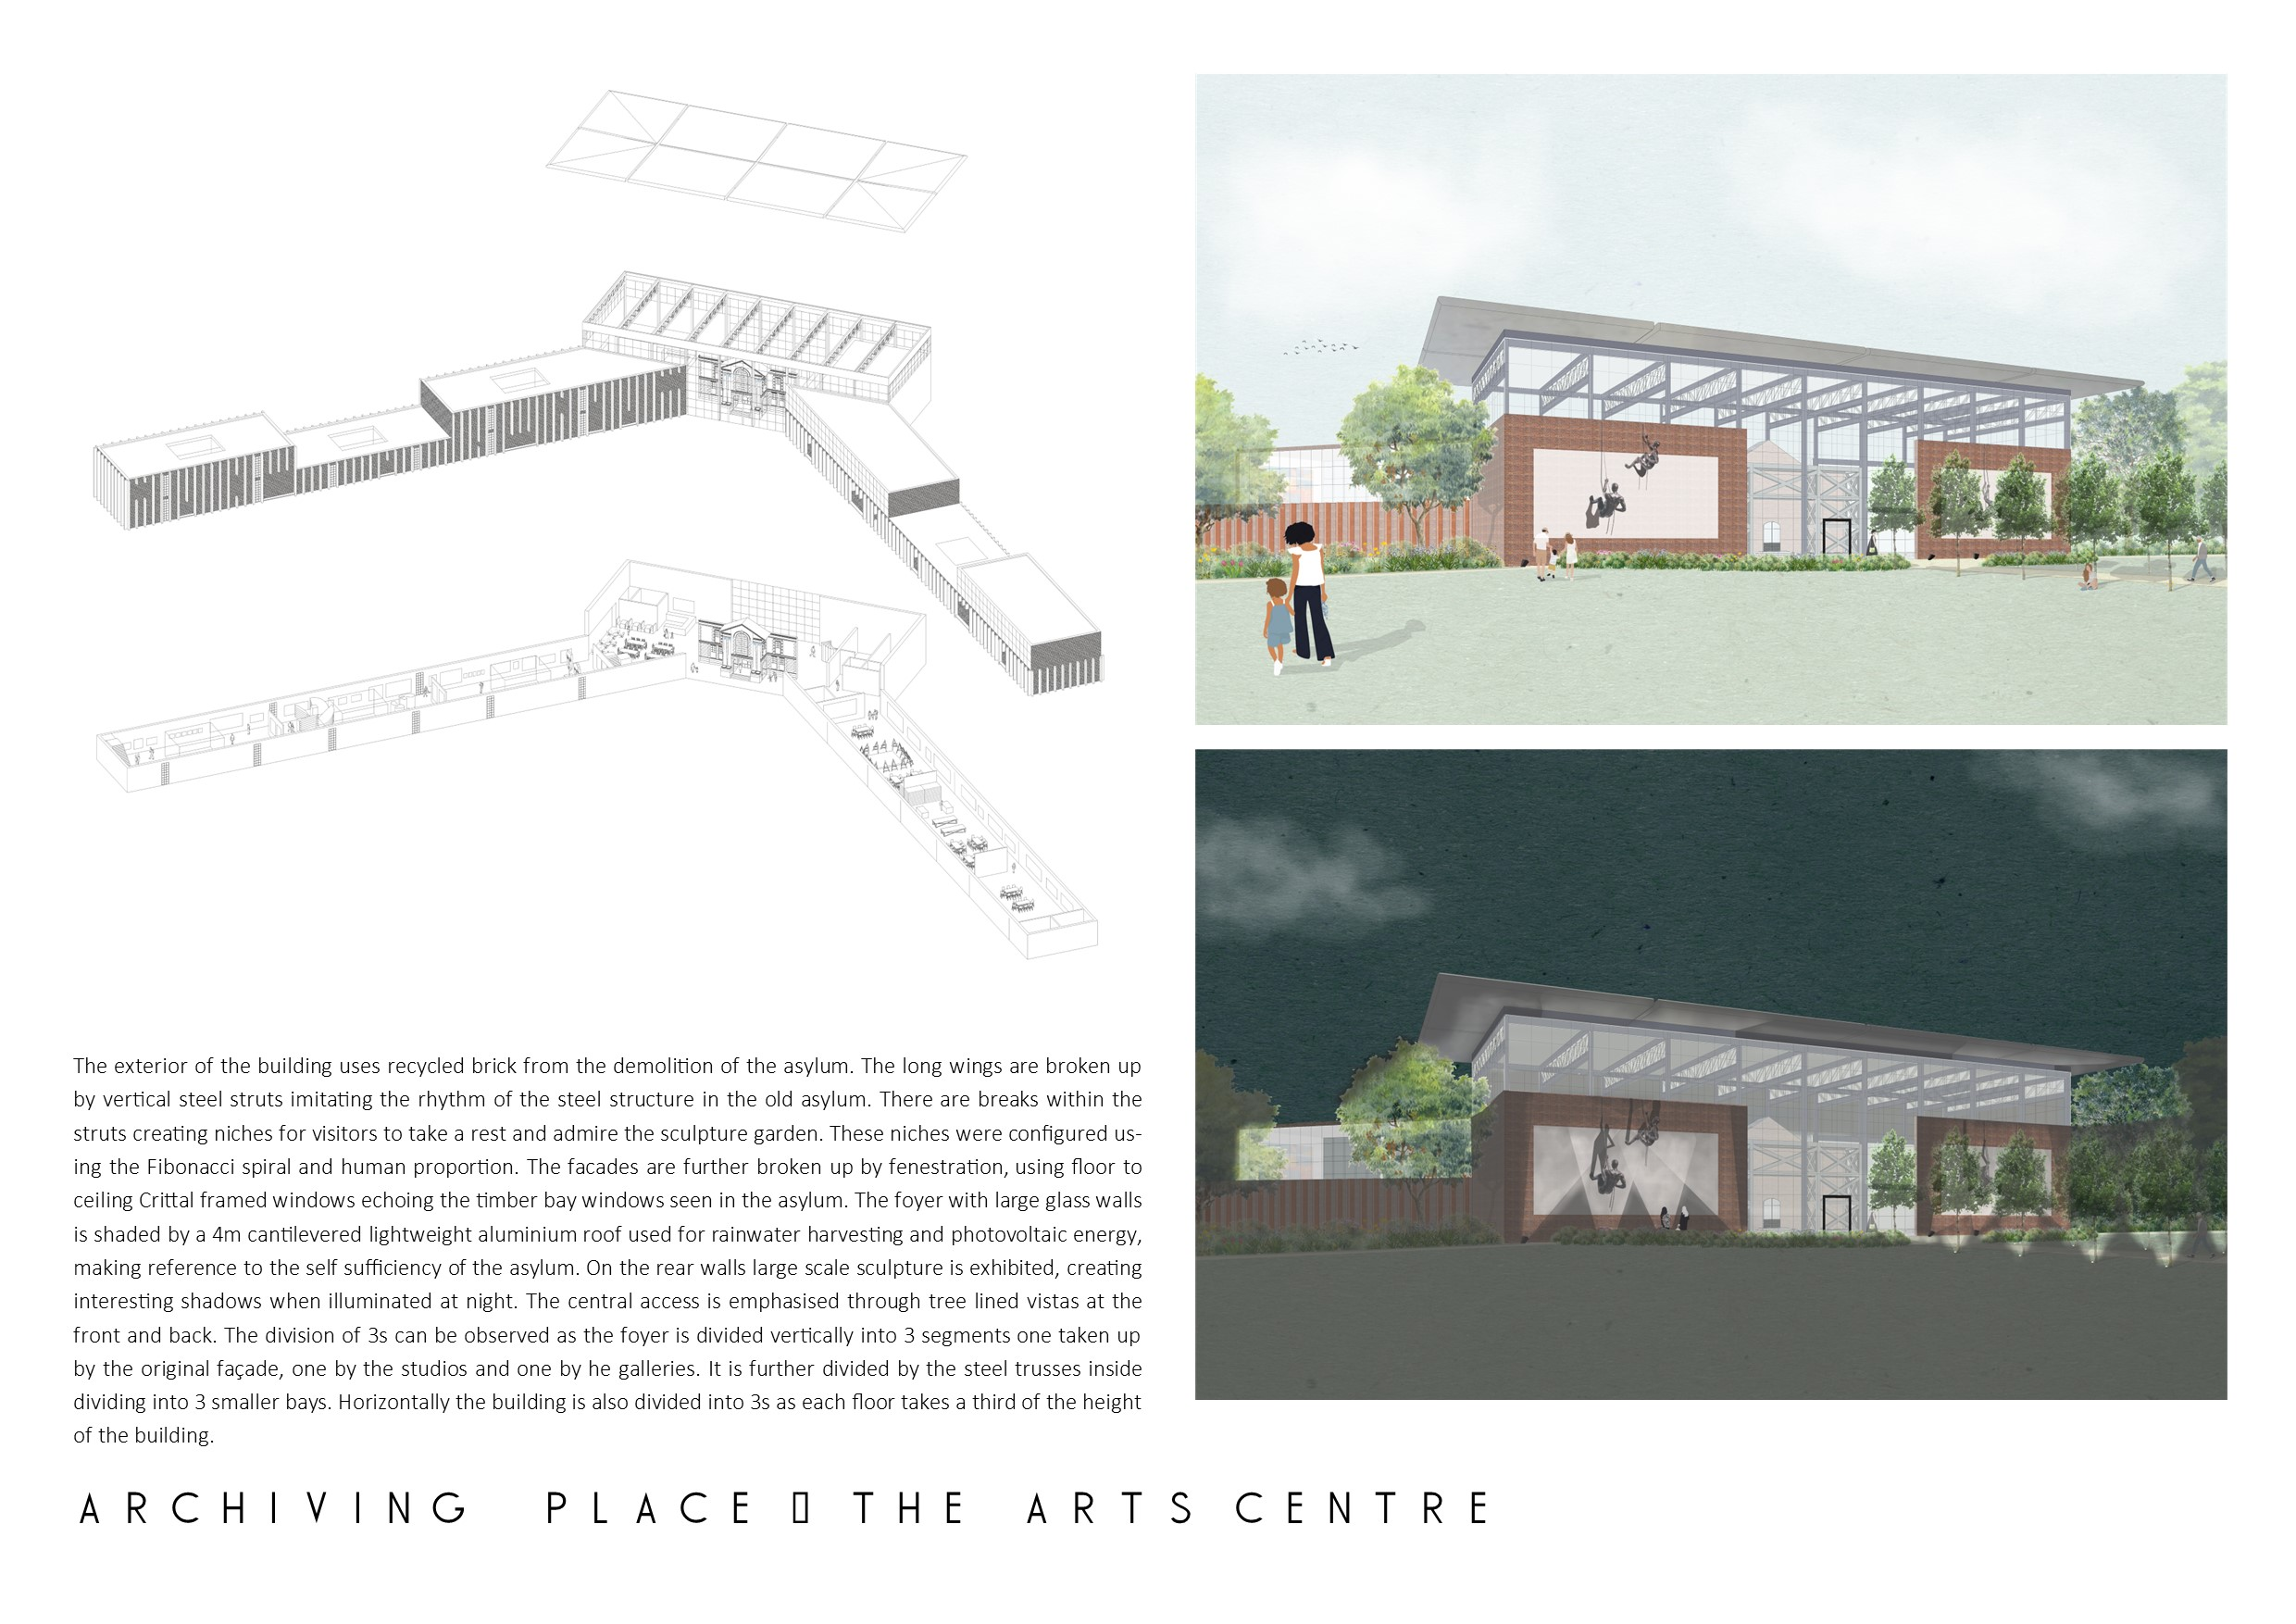 Portfolio Page of  an axonometric drawing of the arts centre and a day and night perspective of the buiding. The perspectives show the facades that use recycled brick from the demolition of the asylum.